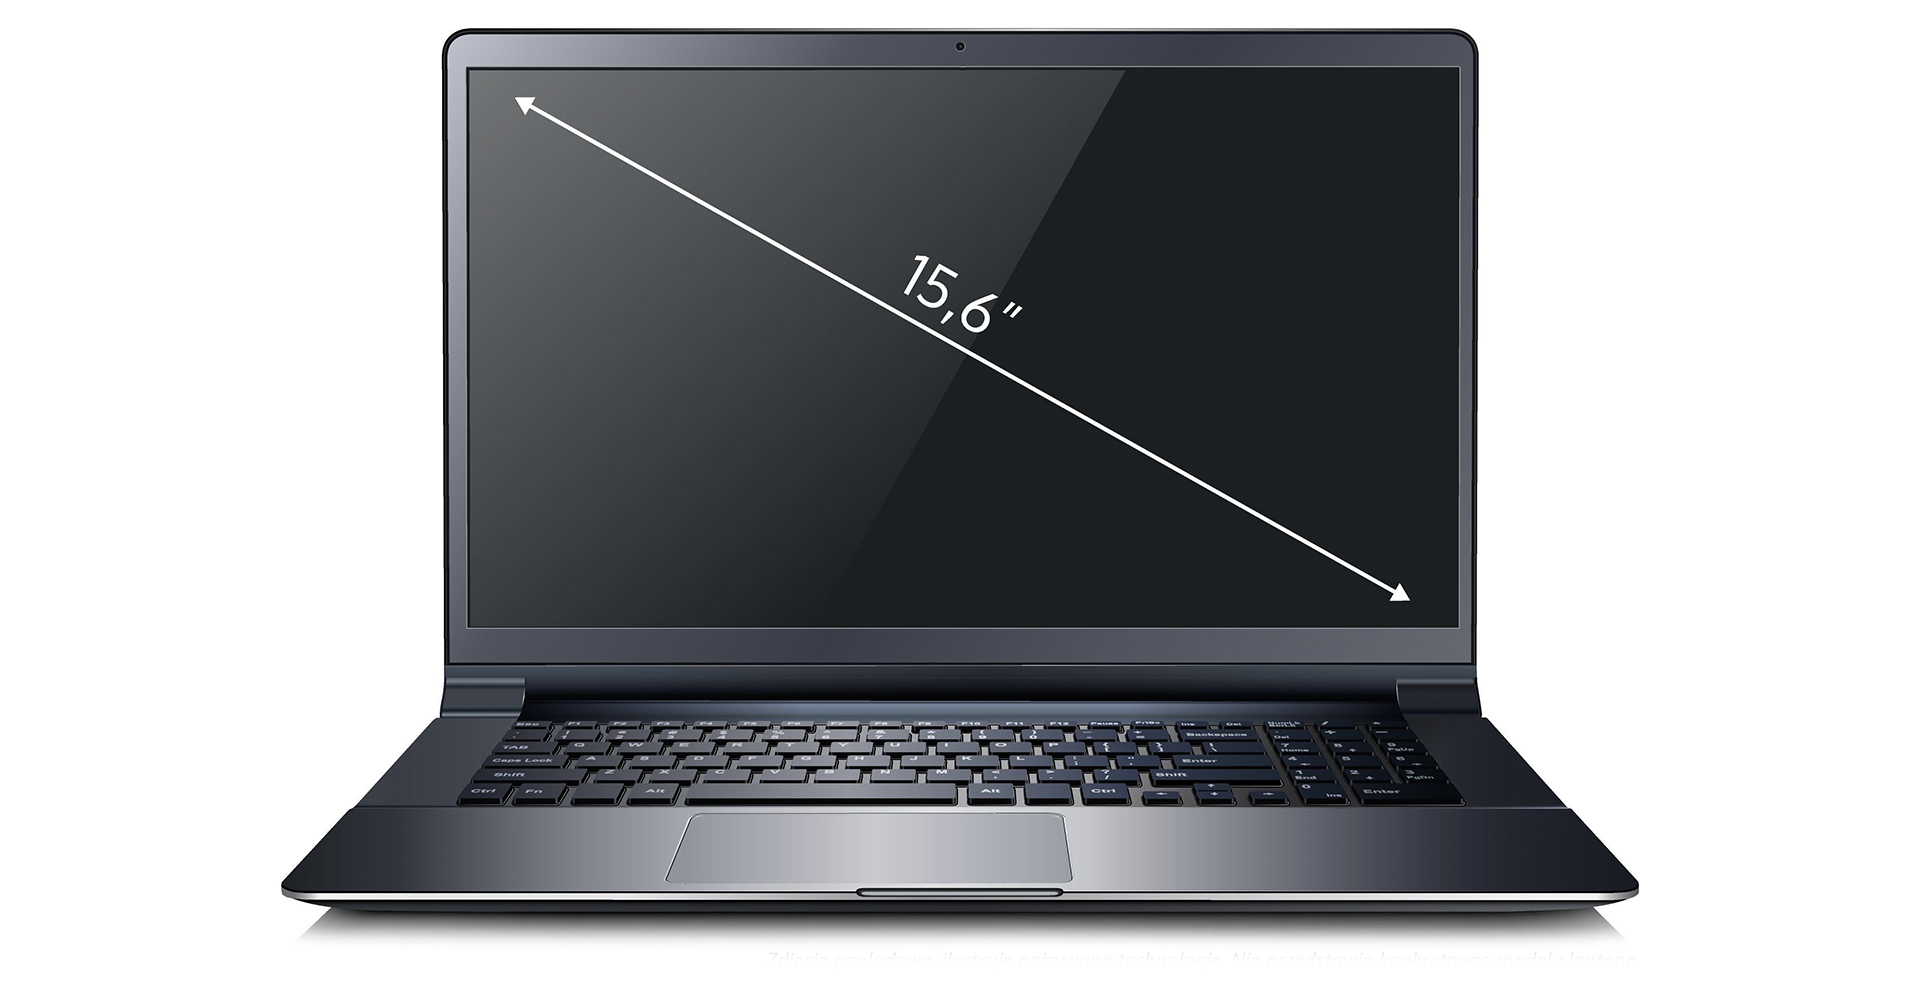 Fujitsu LifeBook A357 (S26391K425V300) 16 GB RAM/ 256 GB + 256 GB SSD/ Windows 10 Pro                             15.6-tollise diagonaaliga